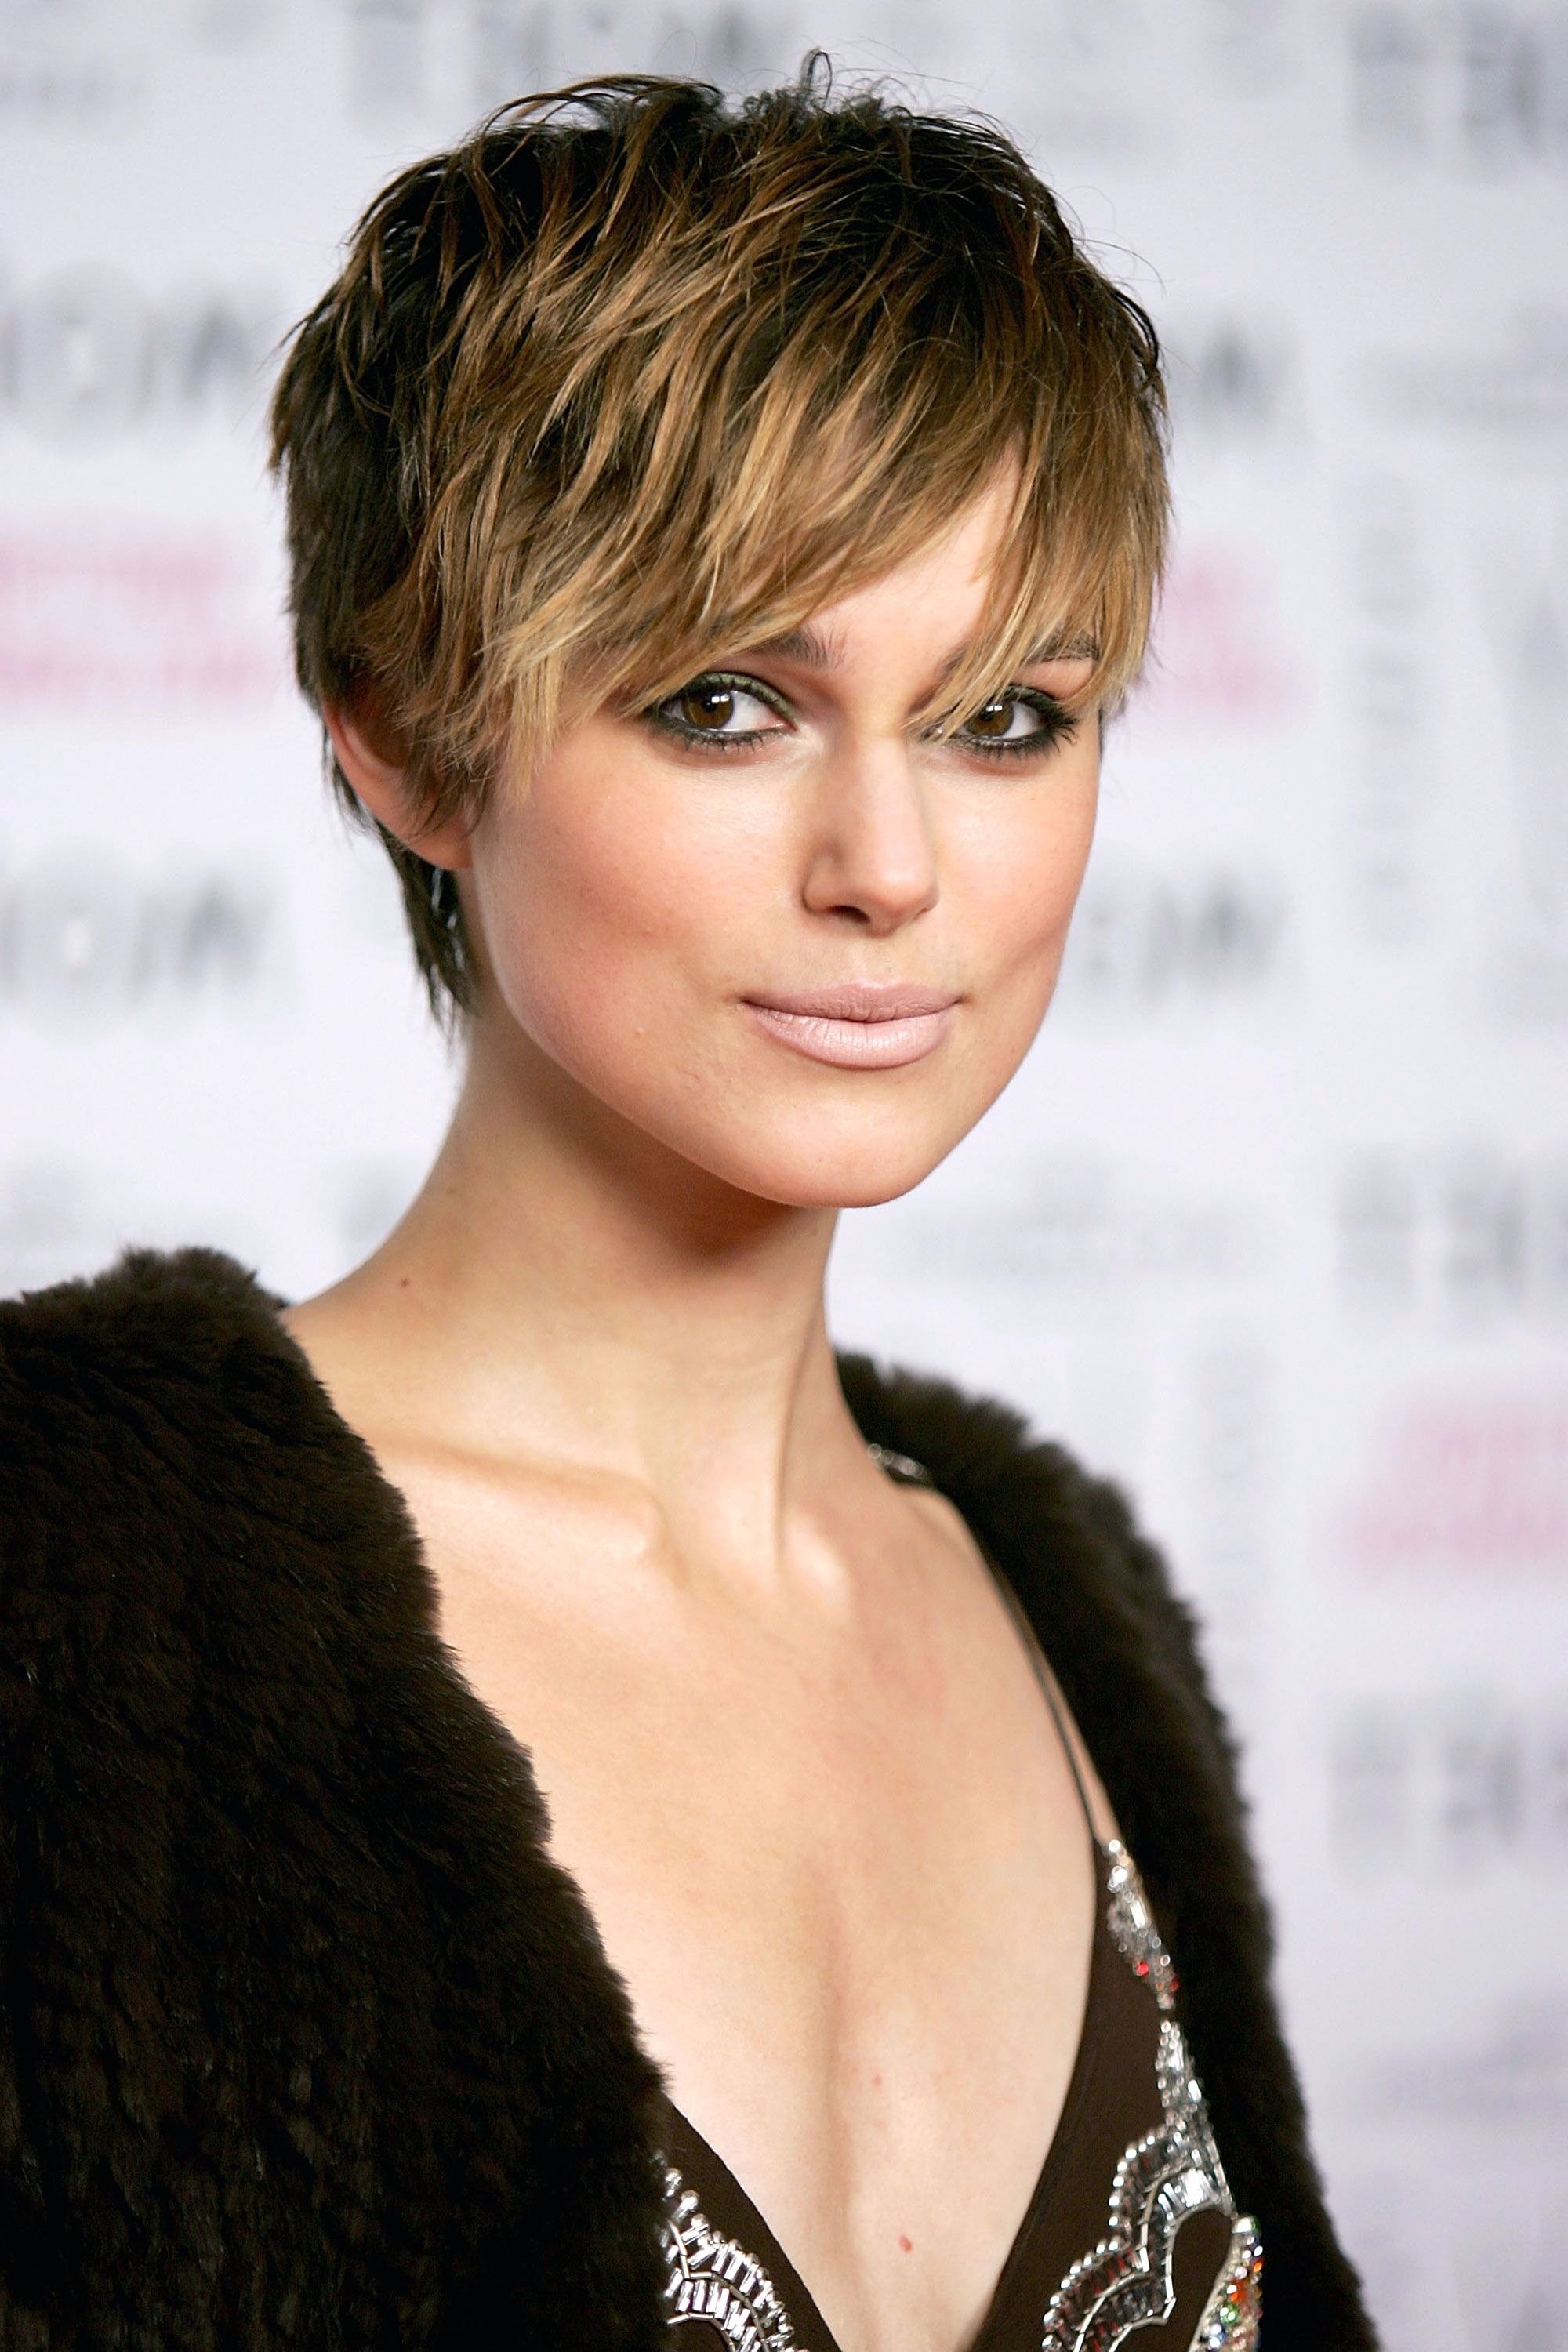 50+ Pixie Cuts We Love For 2018 – Short Pixie Hairstyles From With Regard To Chic Blonde Pixie Bob Hairstyles For Women Over  (View 11 of 20)